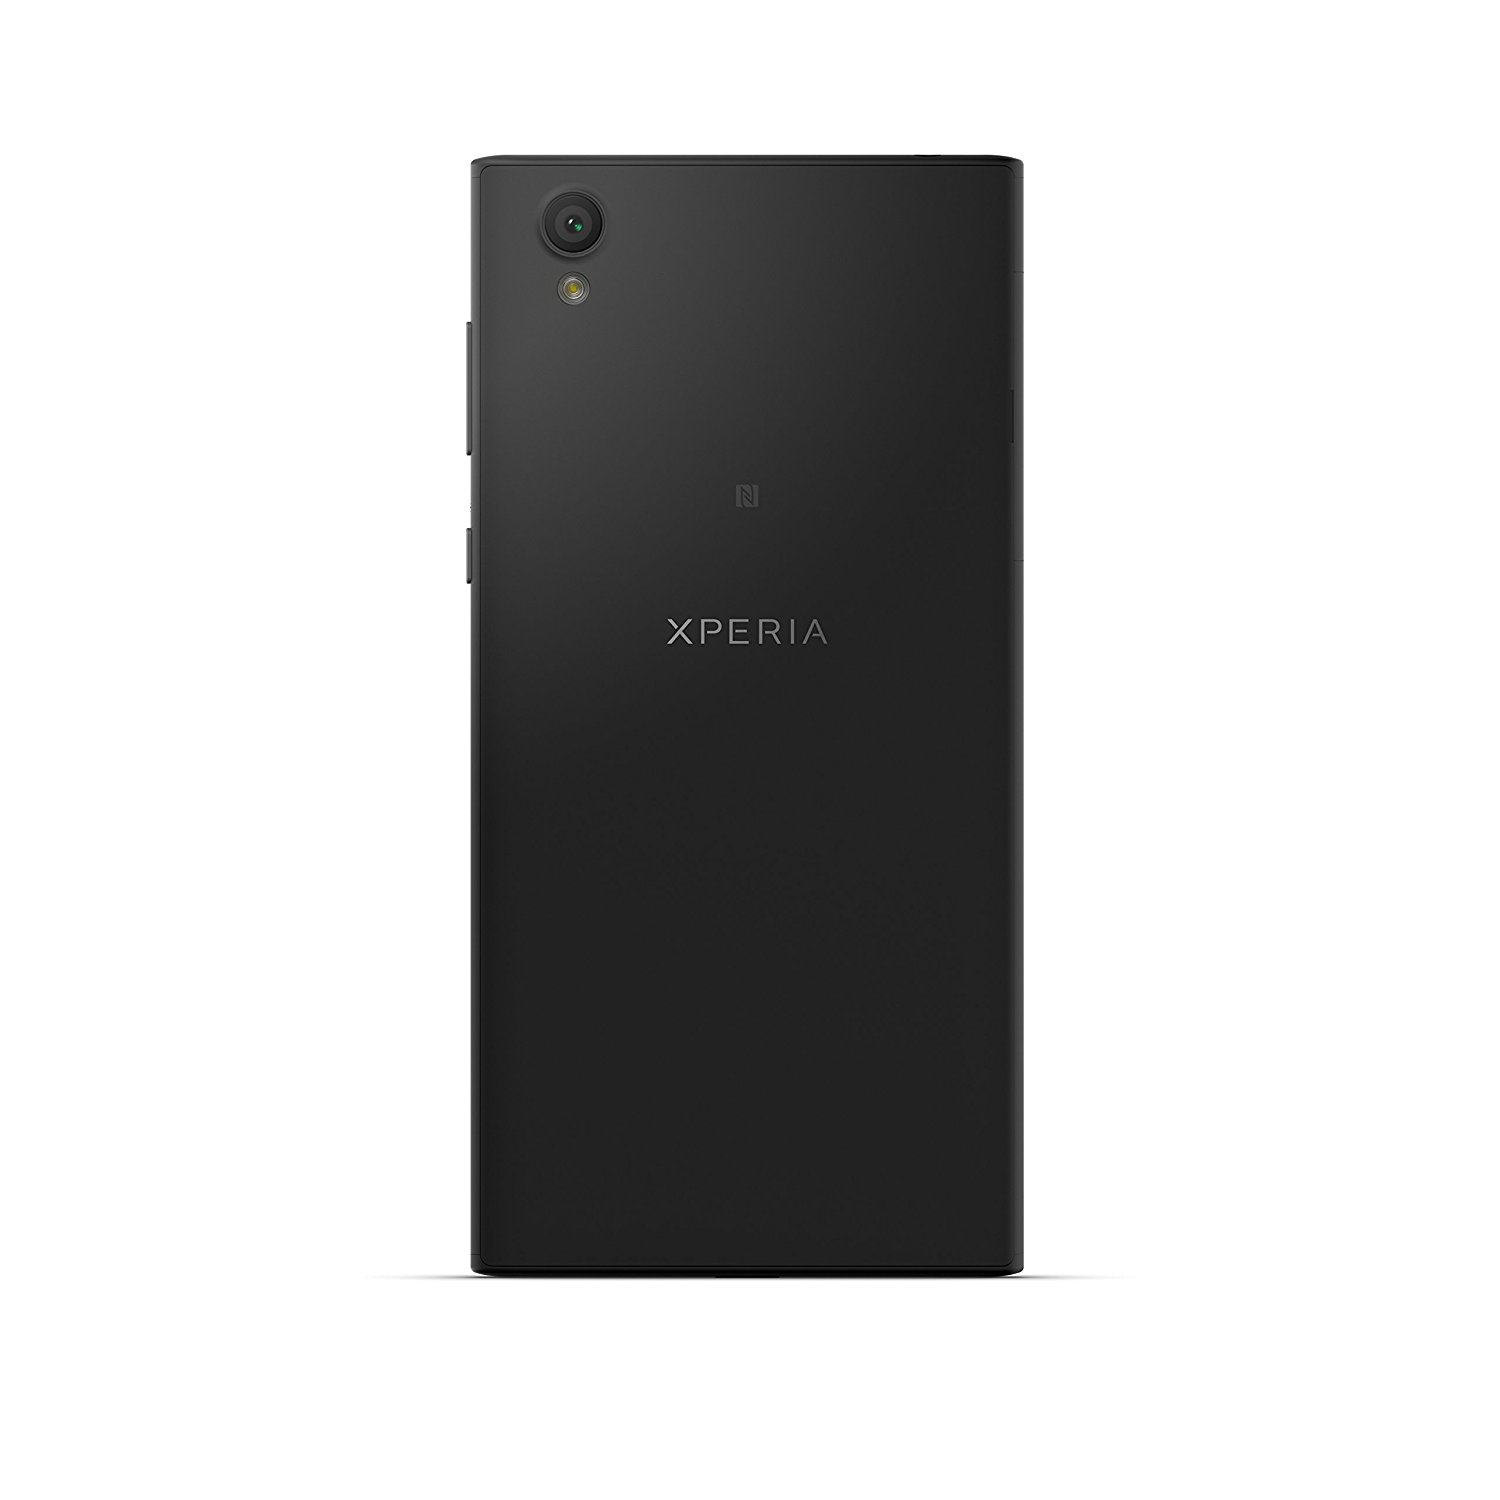 Sony Xperia L1 Unlocked GSM-537